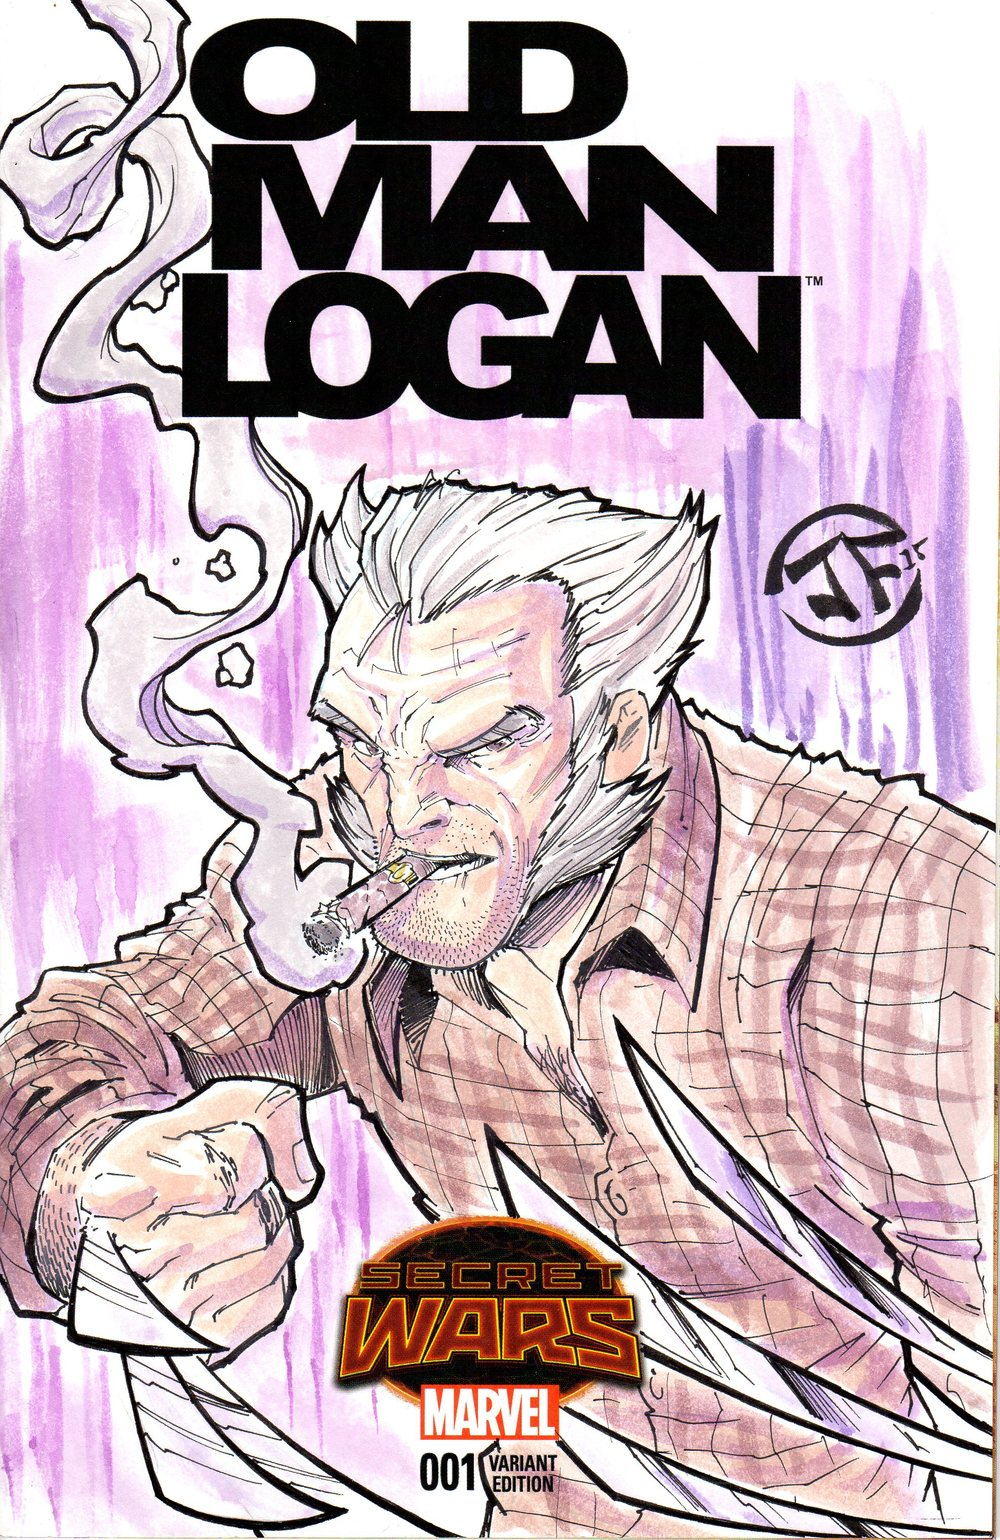 Old Logan Watercolored